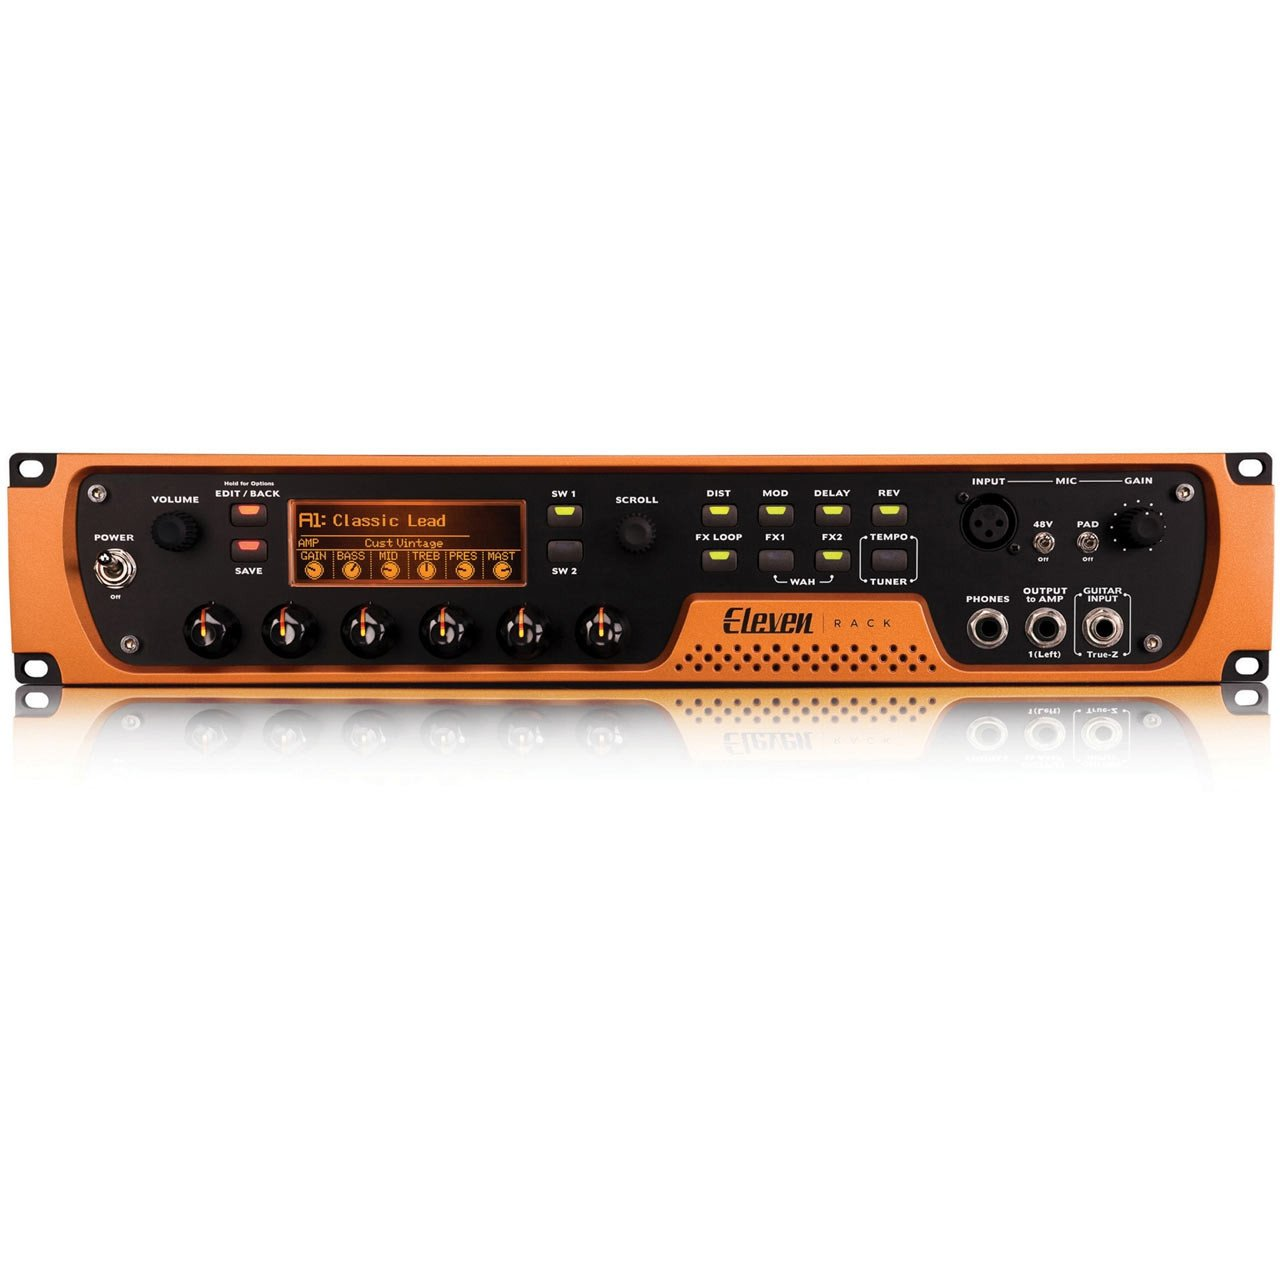 Guitar Audio Interfaces - Avid Pro Tools Eleven Rack With Pro Tools Subscription